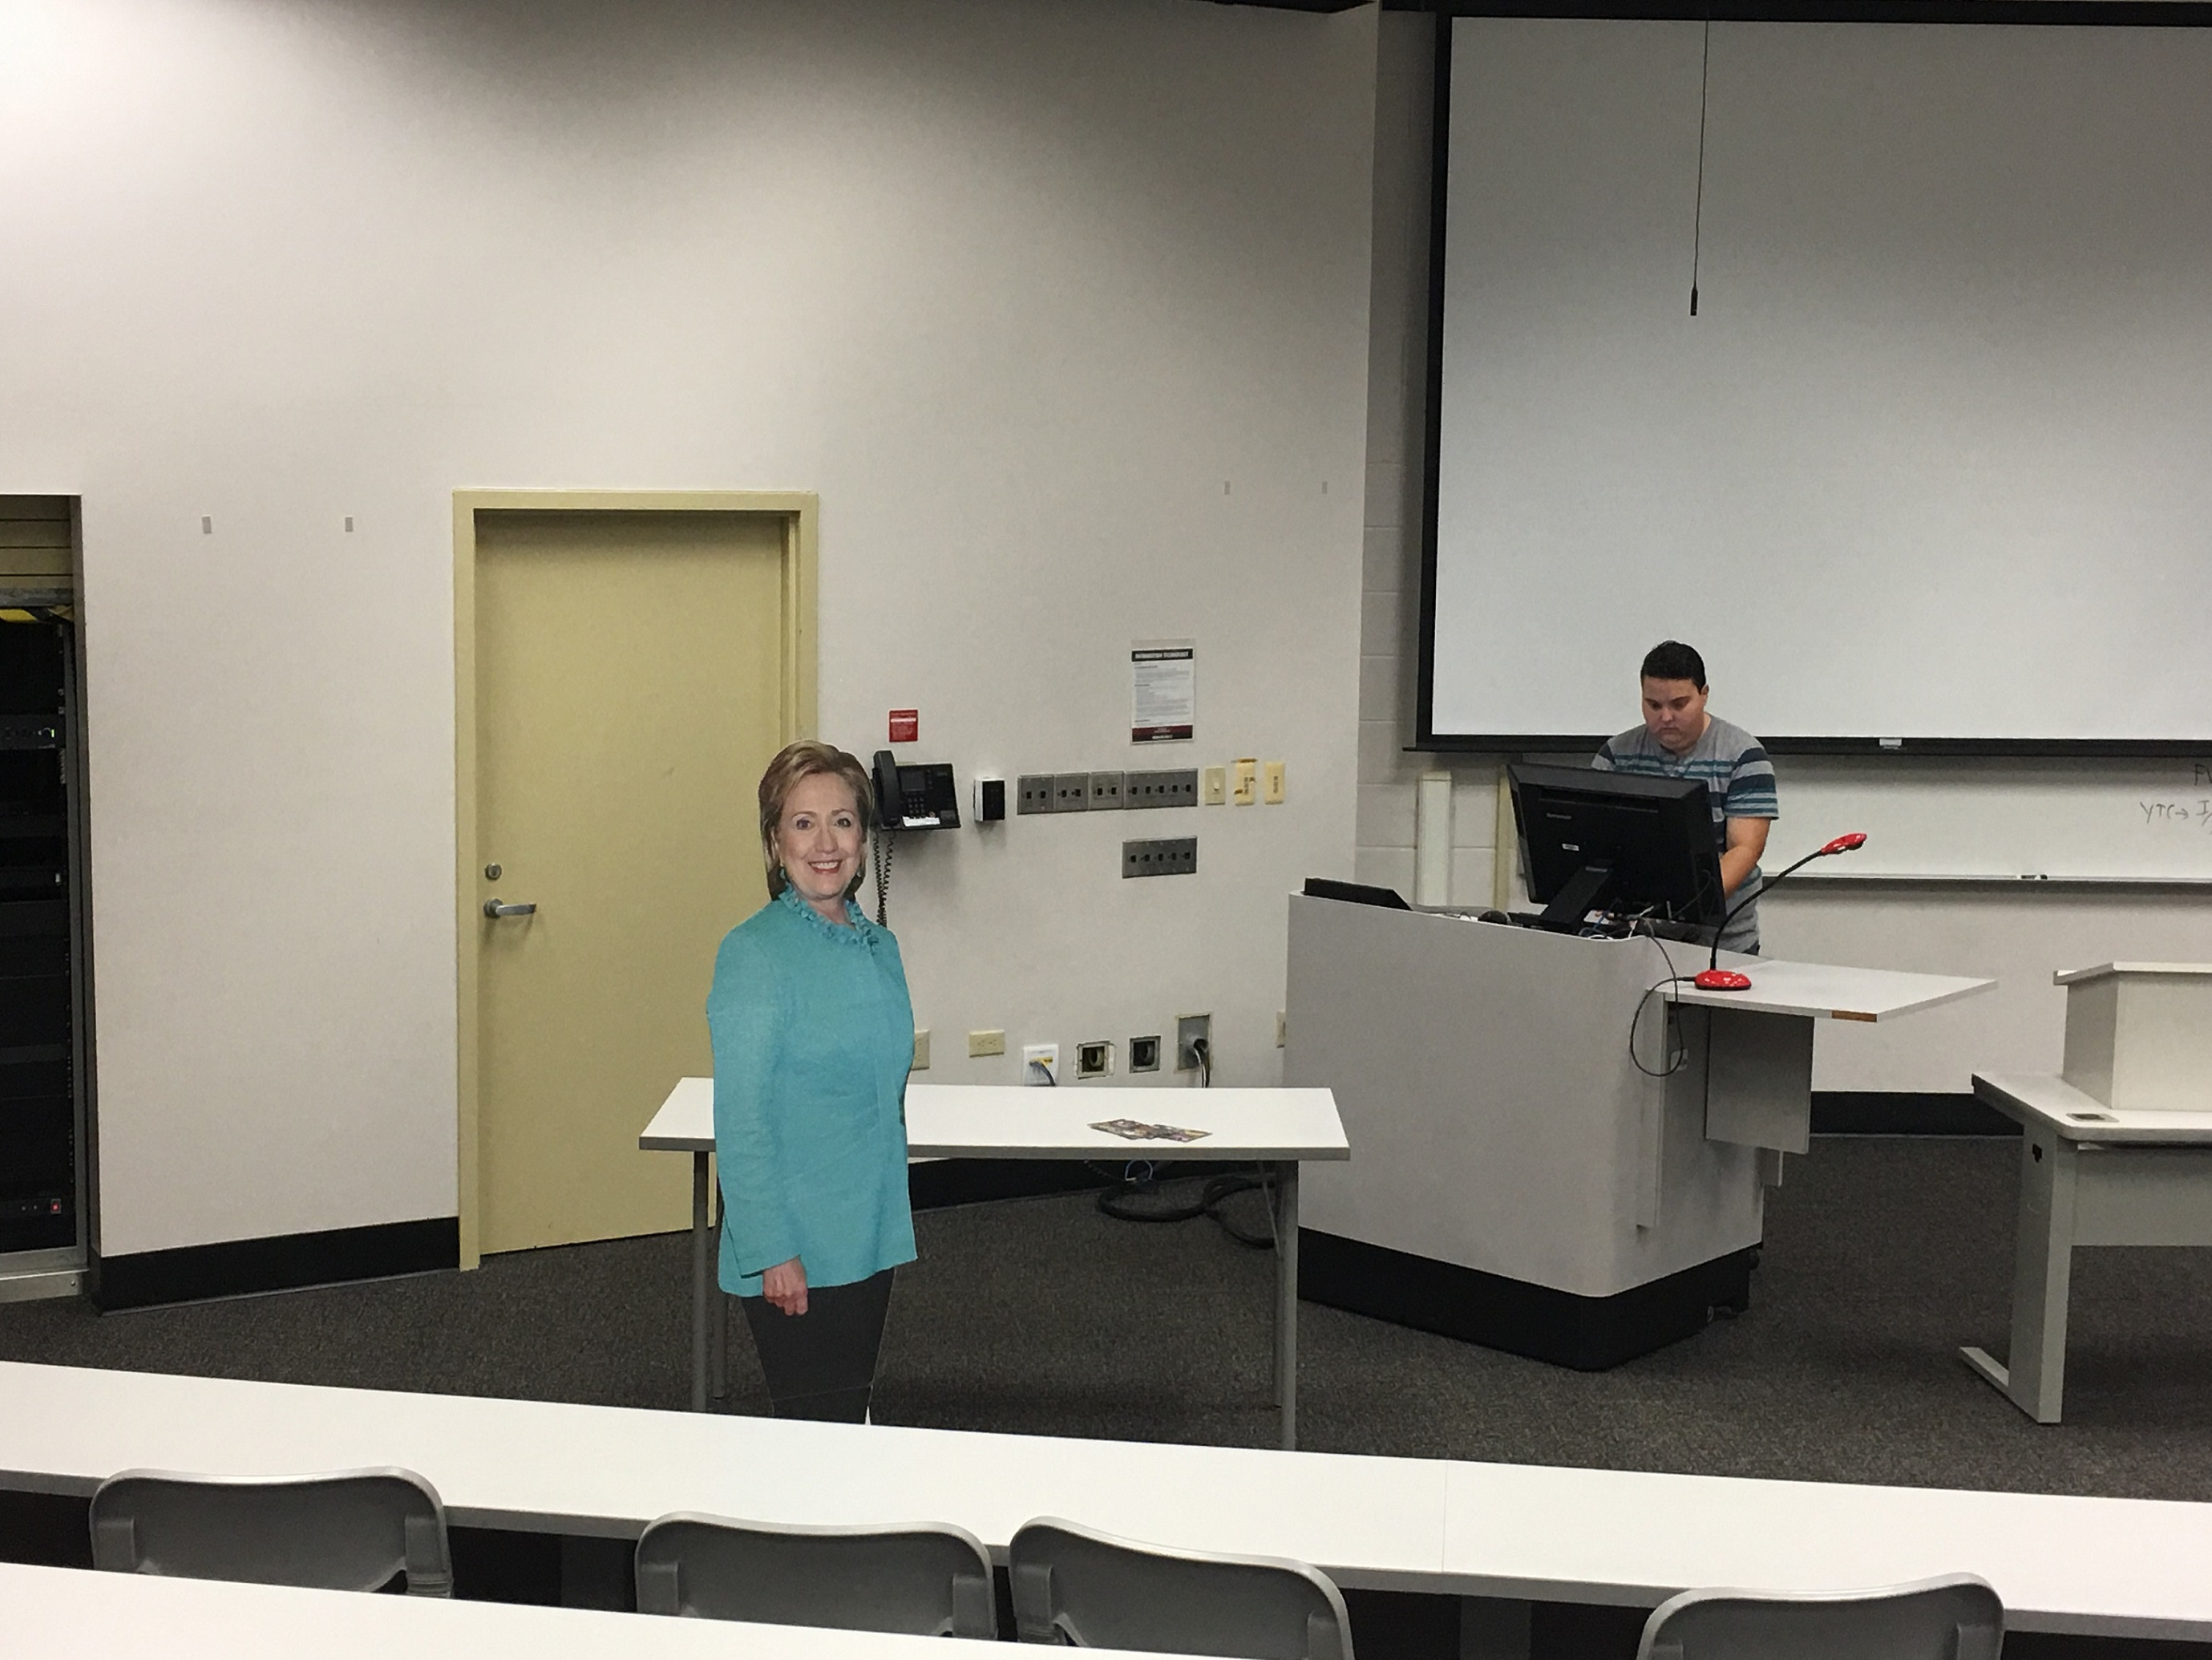 Students+set+up+a+cardboard+cutout+of+Hillary+Clinton+before+the+presidential+debate+began.